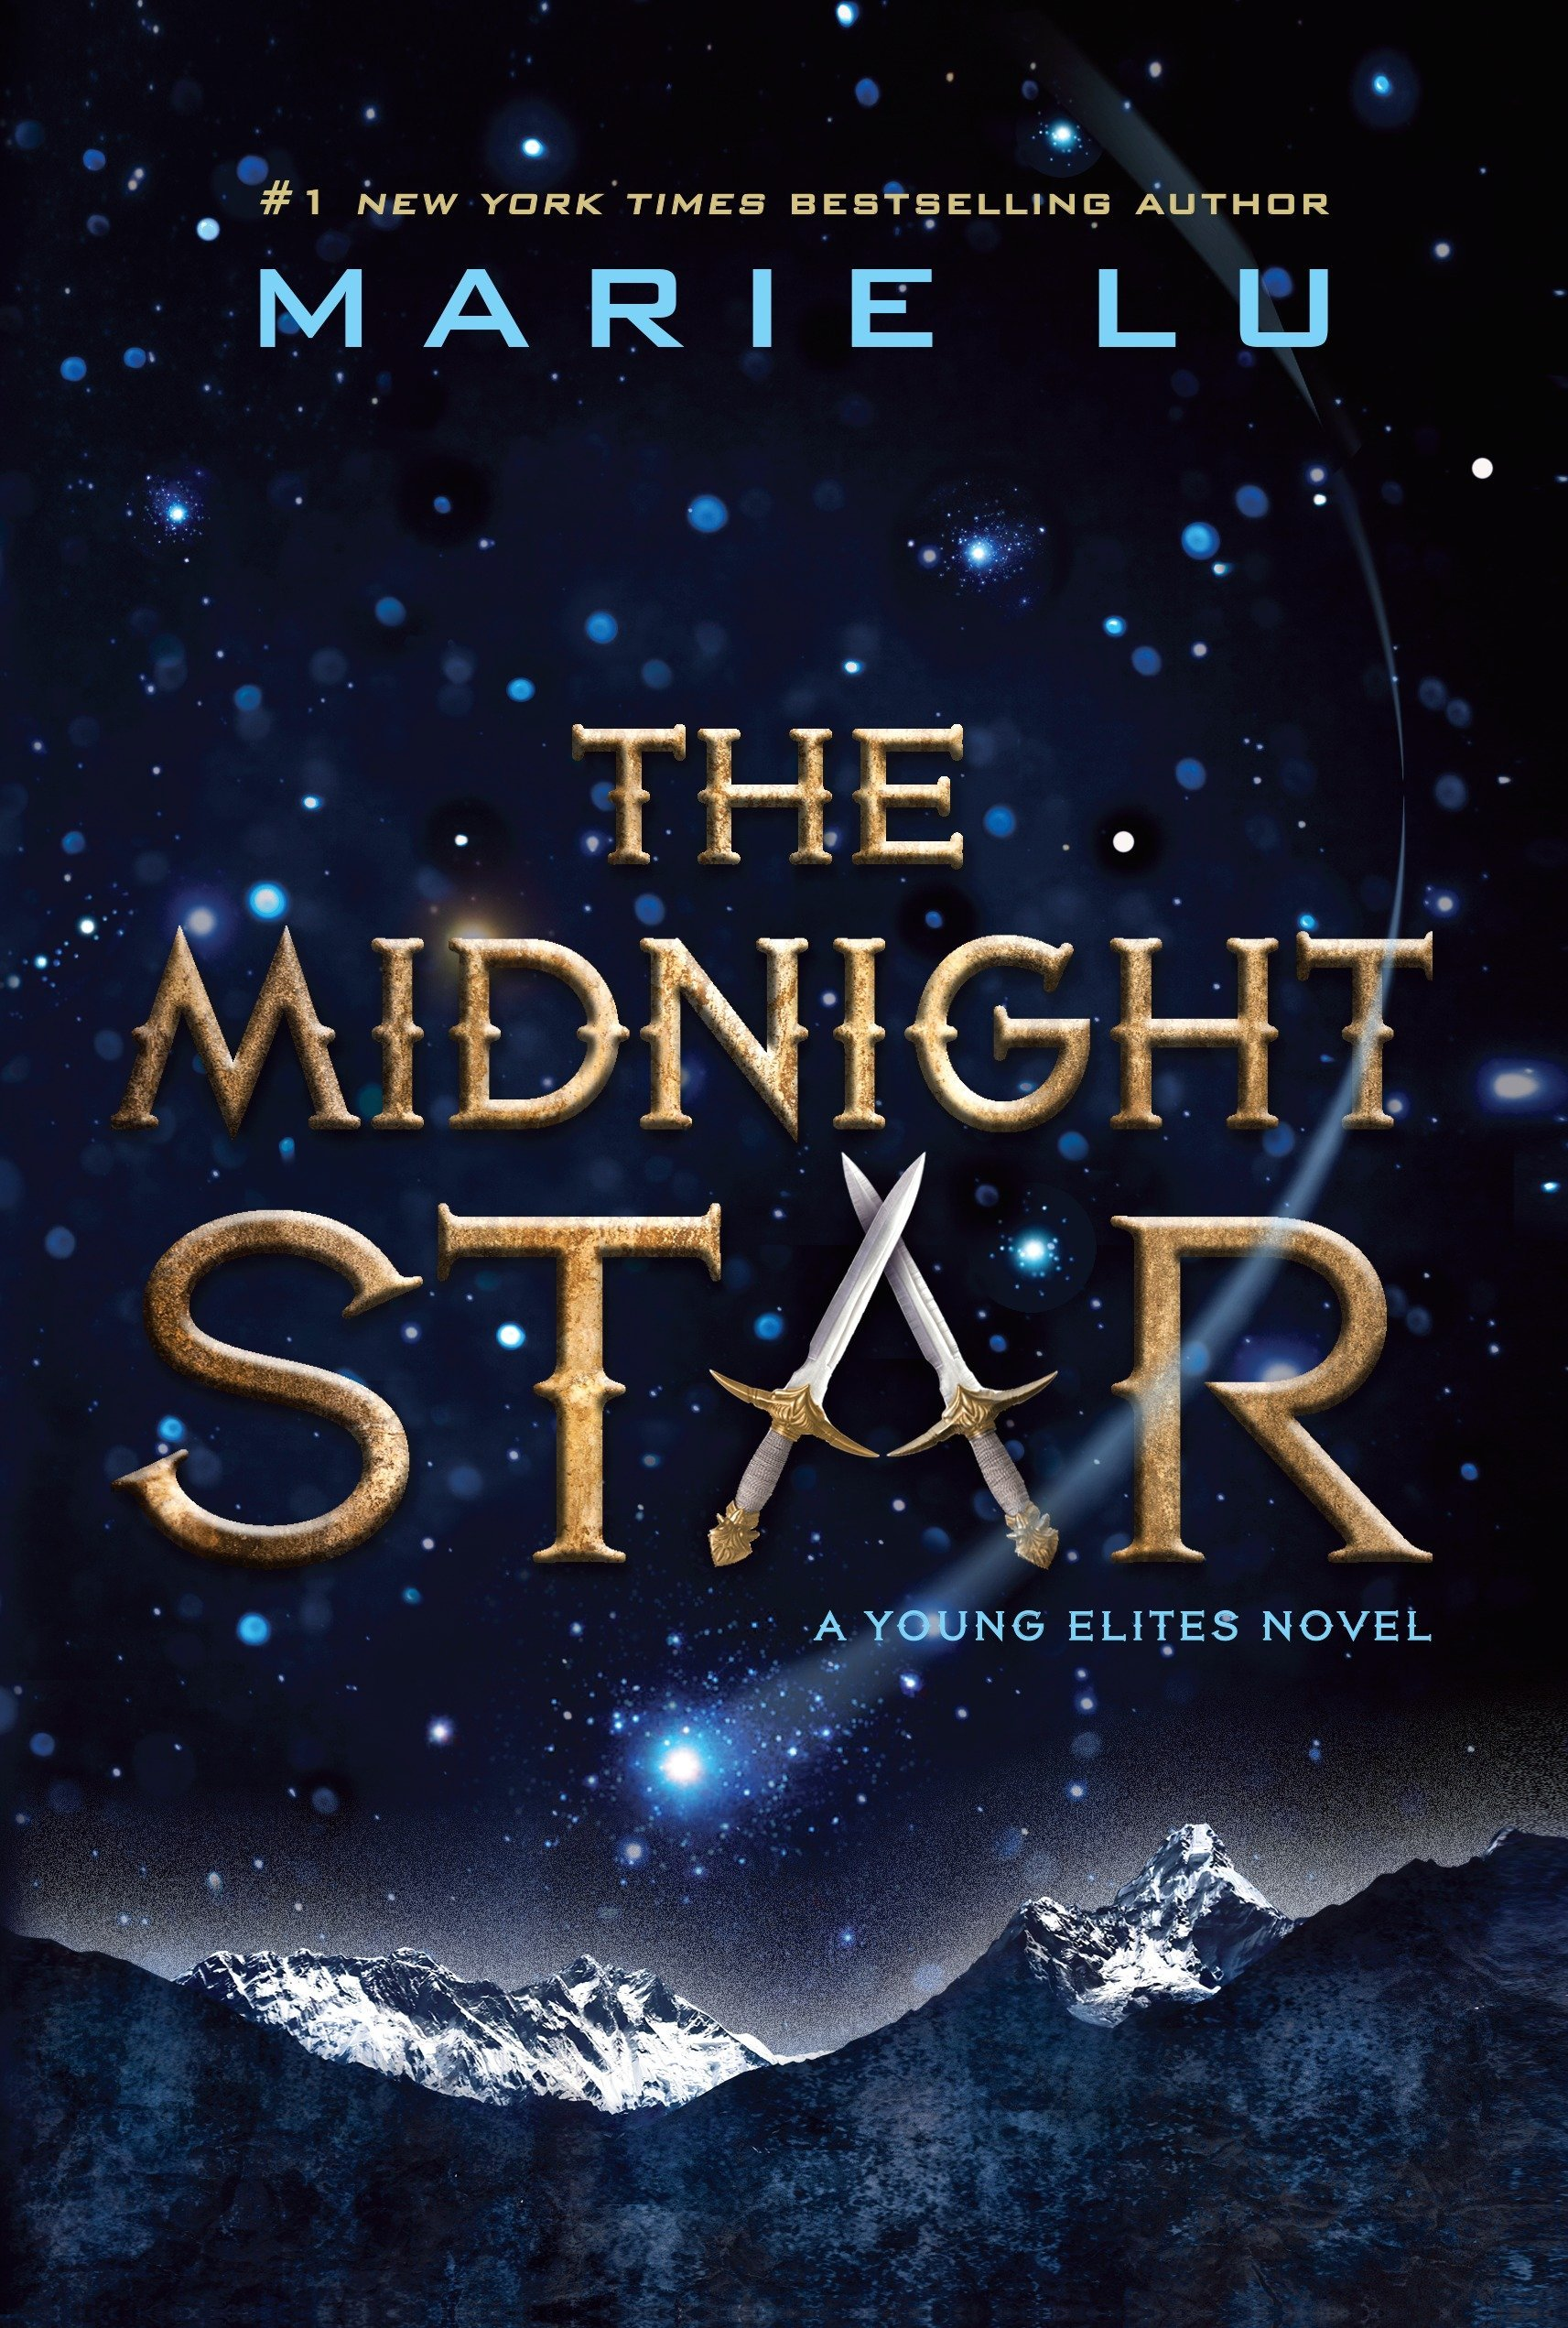 Amazon.com: The Midnight Star (The Young Elites) (9780399167850): Lu,  Marie: Books